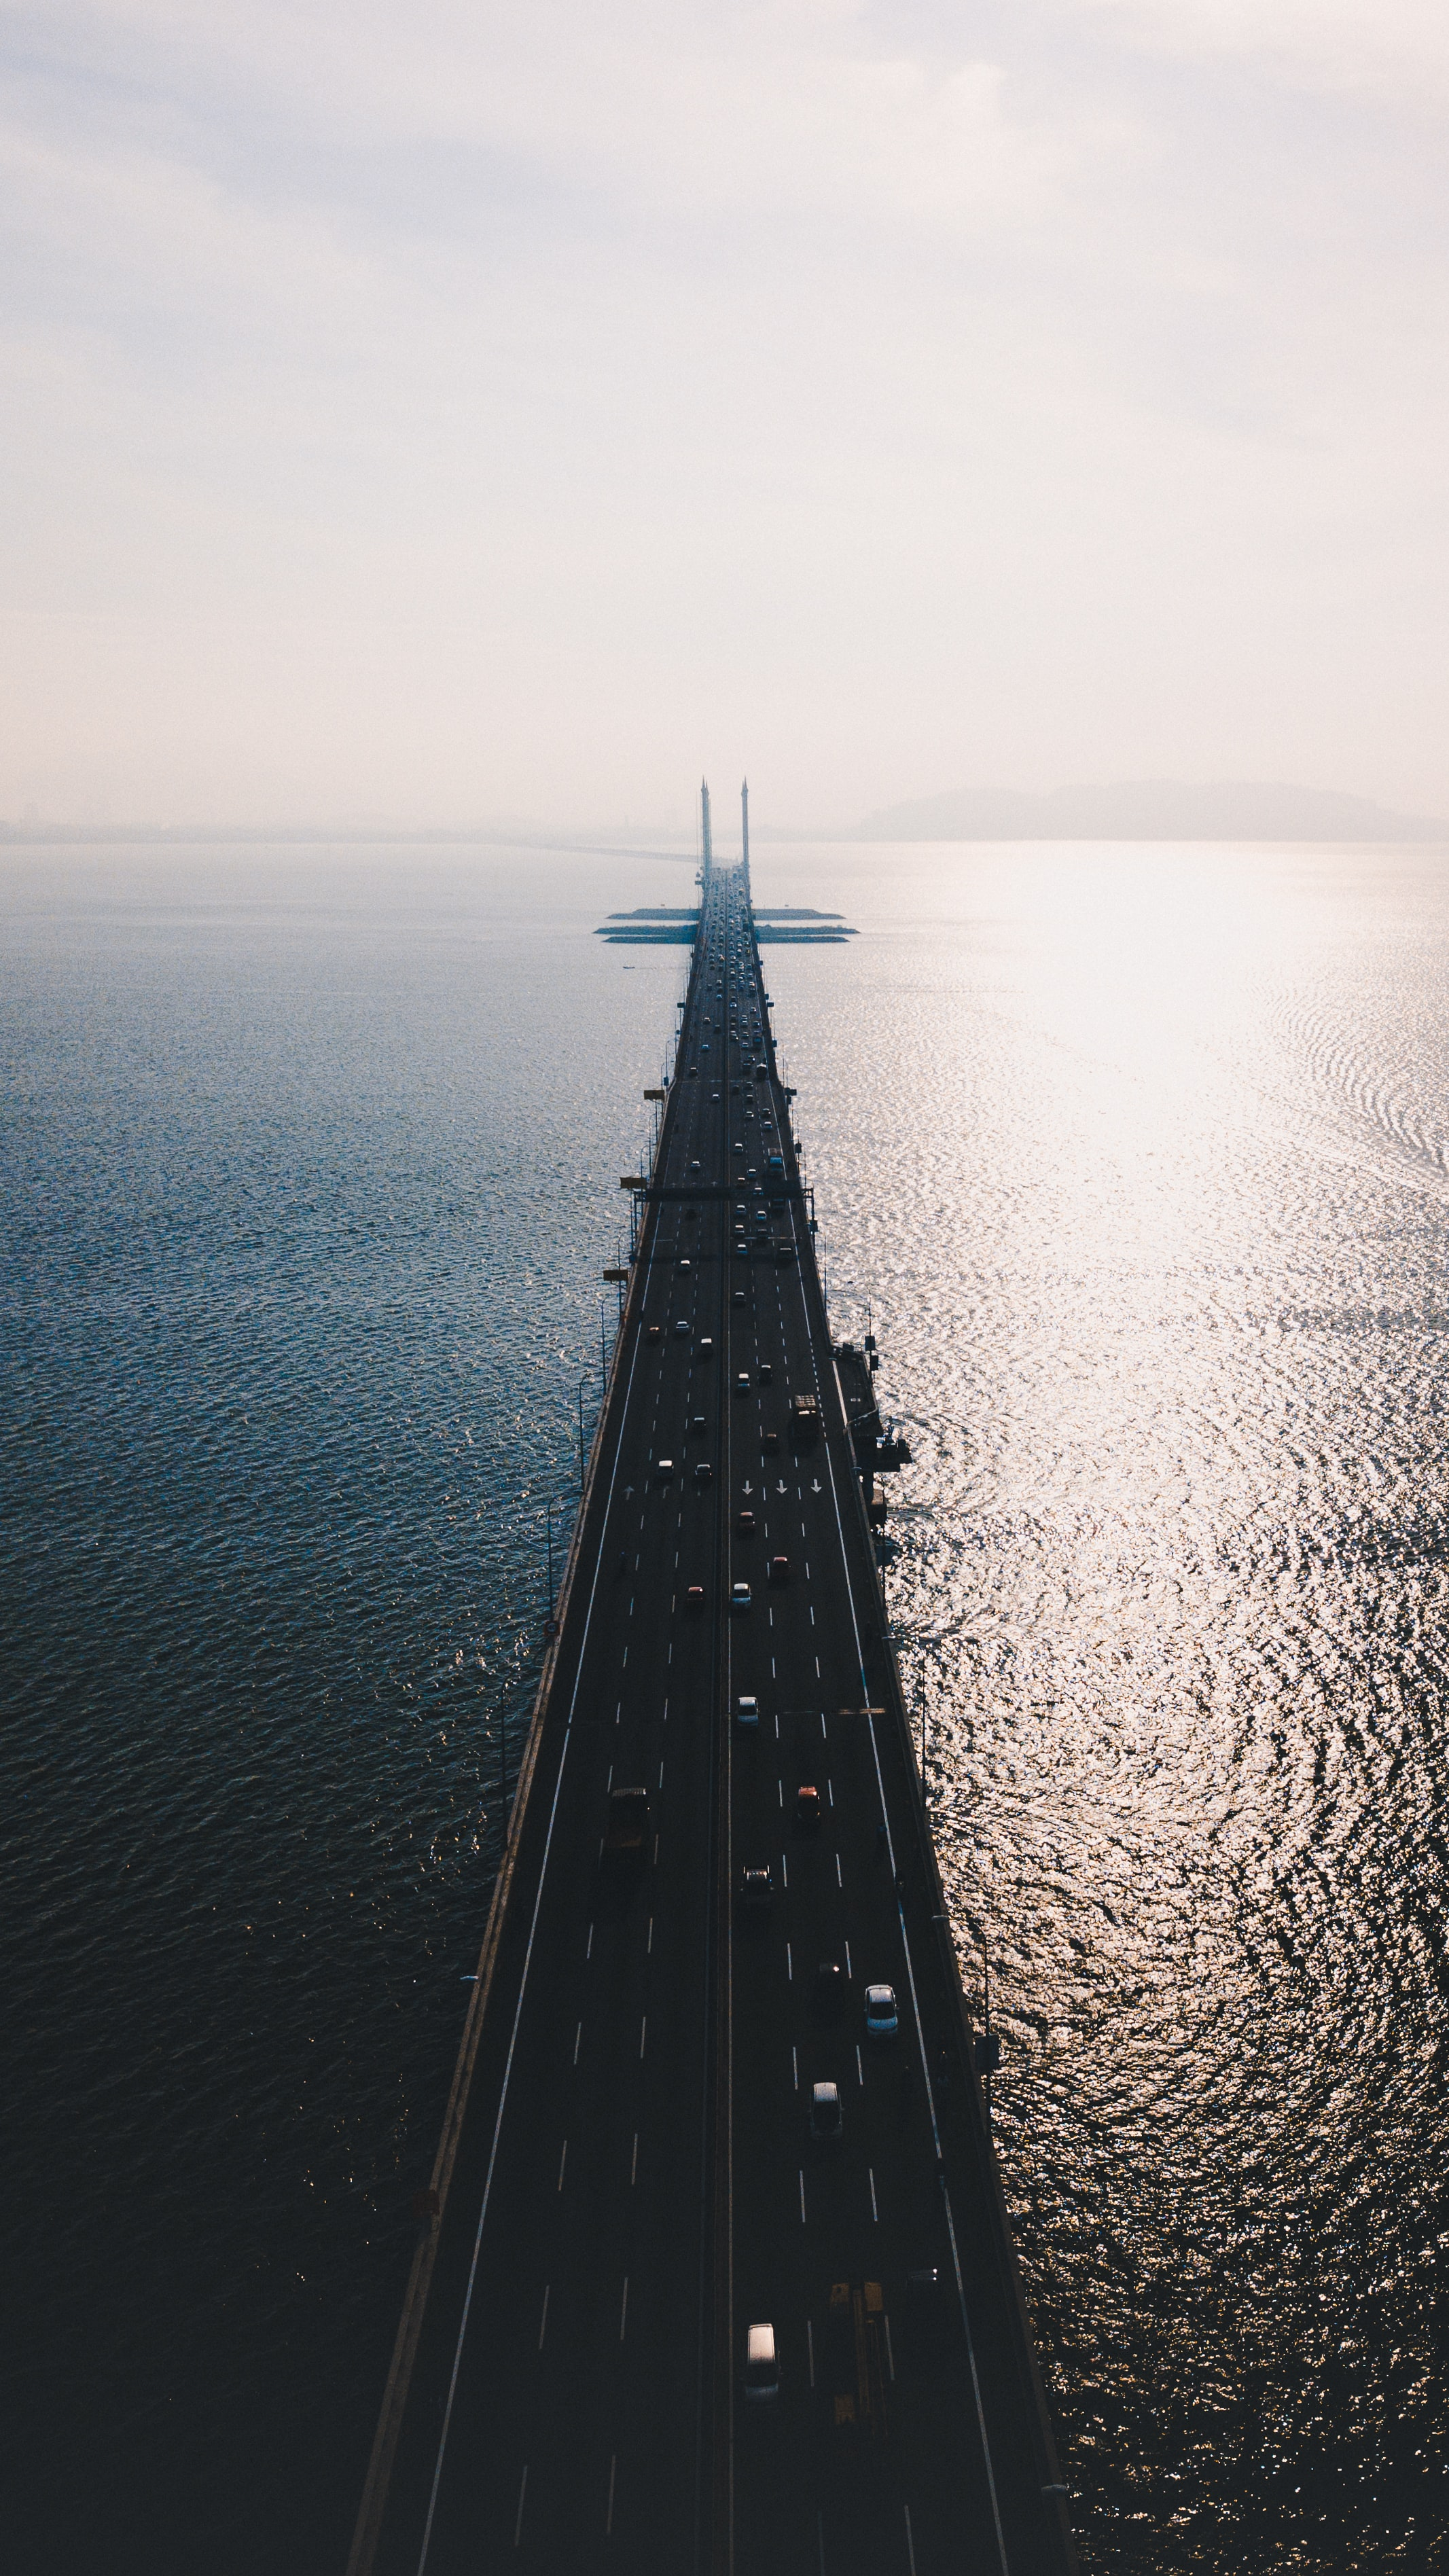 bridge on body of water during daytime